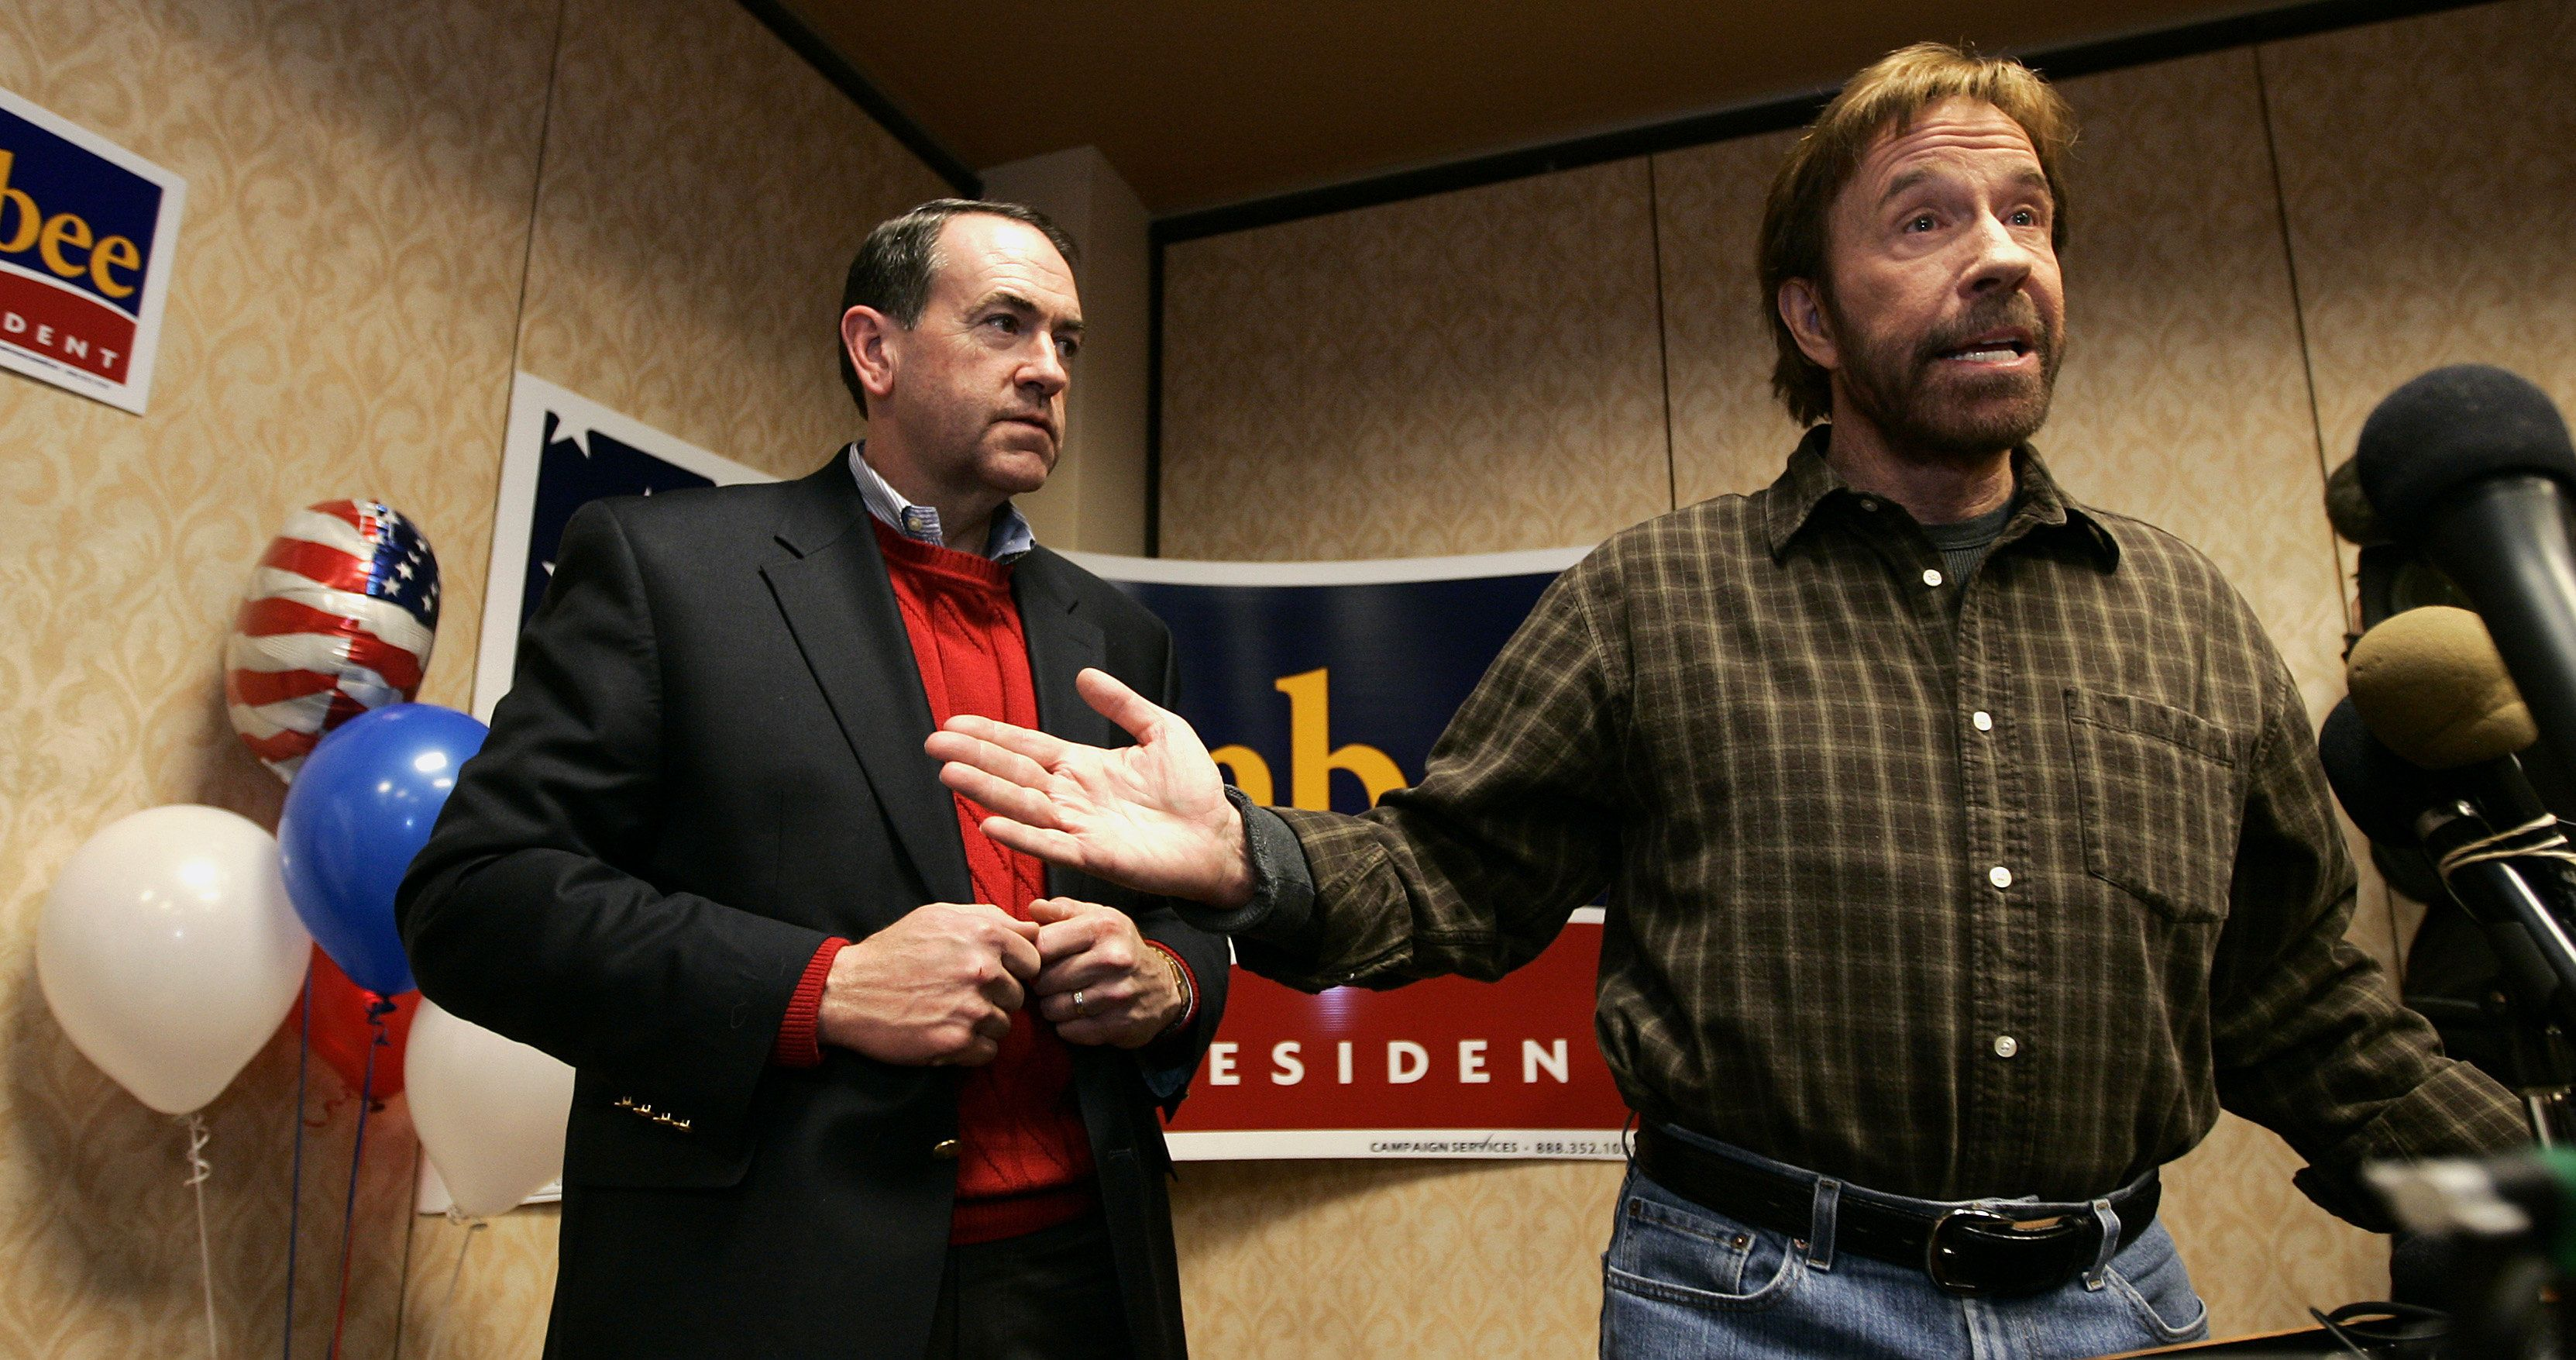 Republican presidential candidate and former Arkansas Governor Mike Huckabee (L) listens to a question with US actor and supporter Chuck Norris (L) during a campaign stop in Des Moines, Iowa, 1 January, 2008. REUTERS/Jeff Haynes   (UNITED STATES)